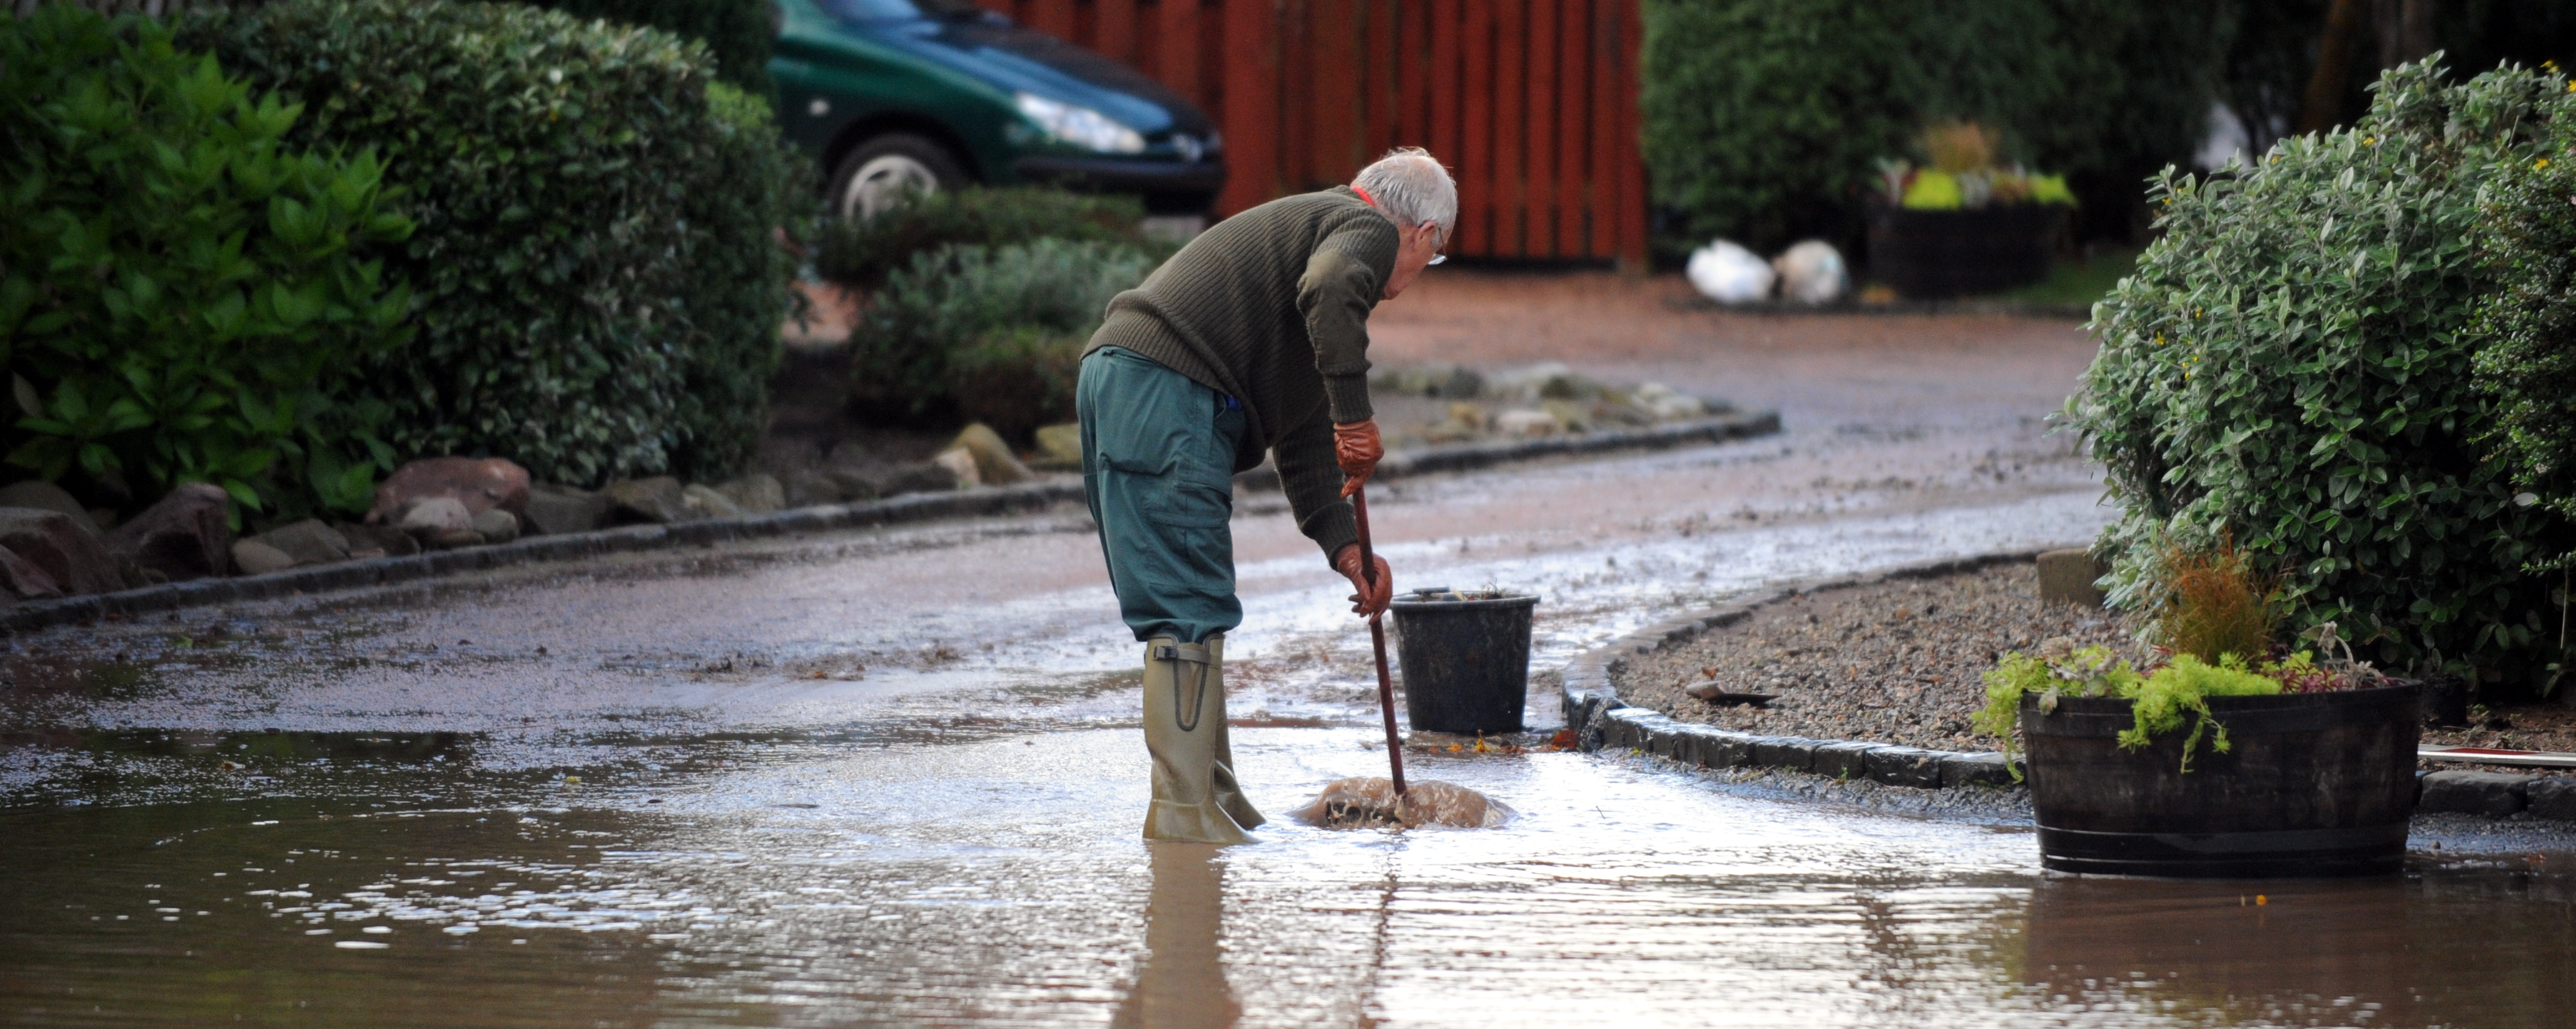 A resident of Stonehaven cleans up after a previous flood.